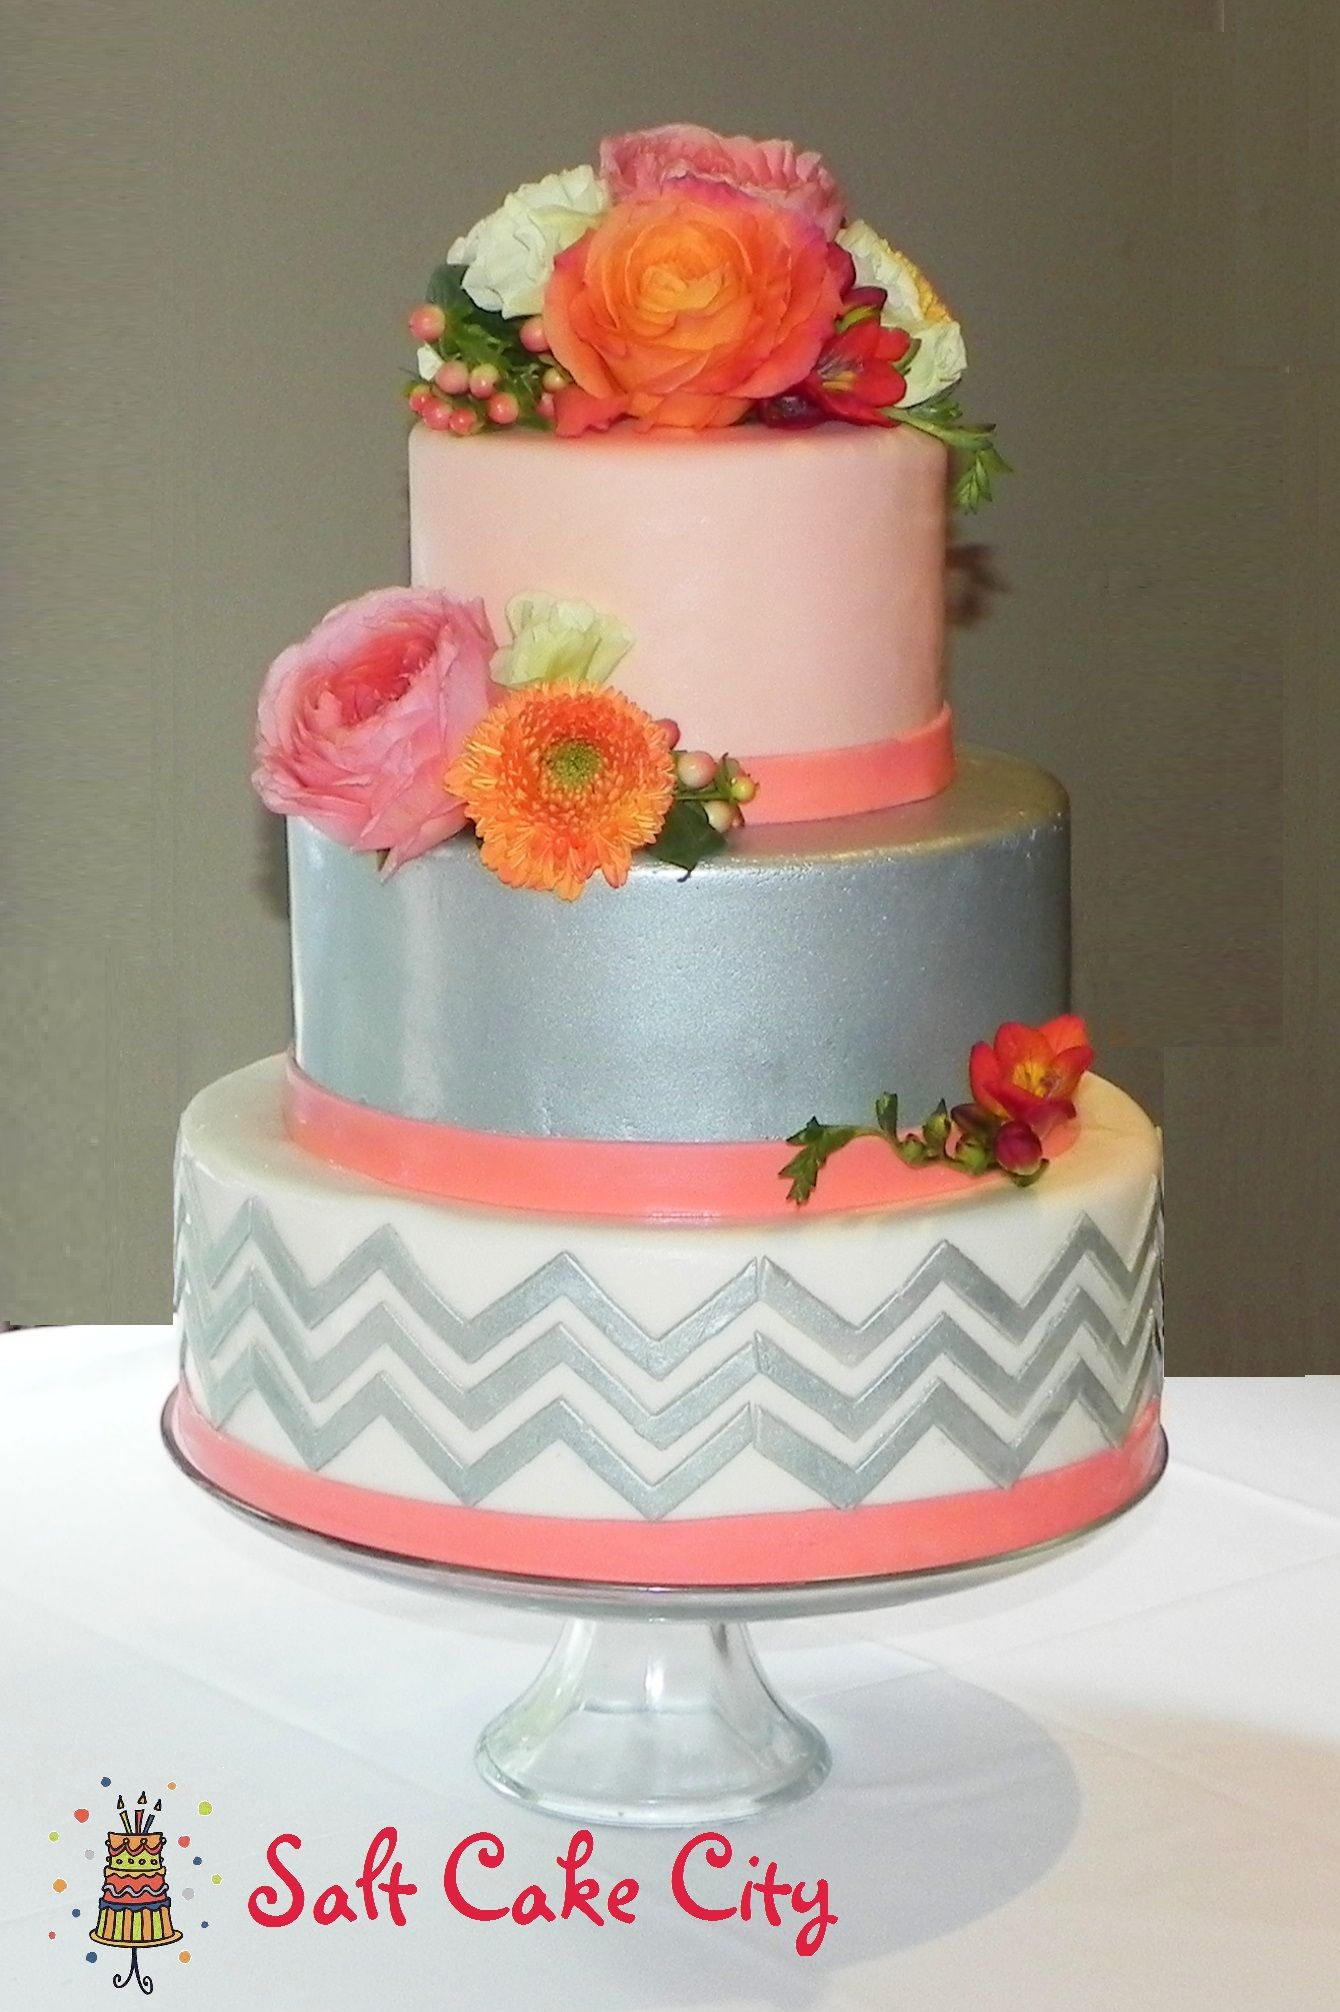 Cake ideas on pinterest pirate cakes marshmallow fondant and - Coral Silver Chevron Wedding Cake Coral Silver Chevron Wedding Cake All Marshmallow Fondant With Edible Silver On The Middle Tier And Chevron